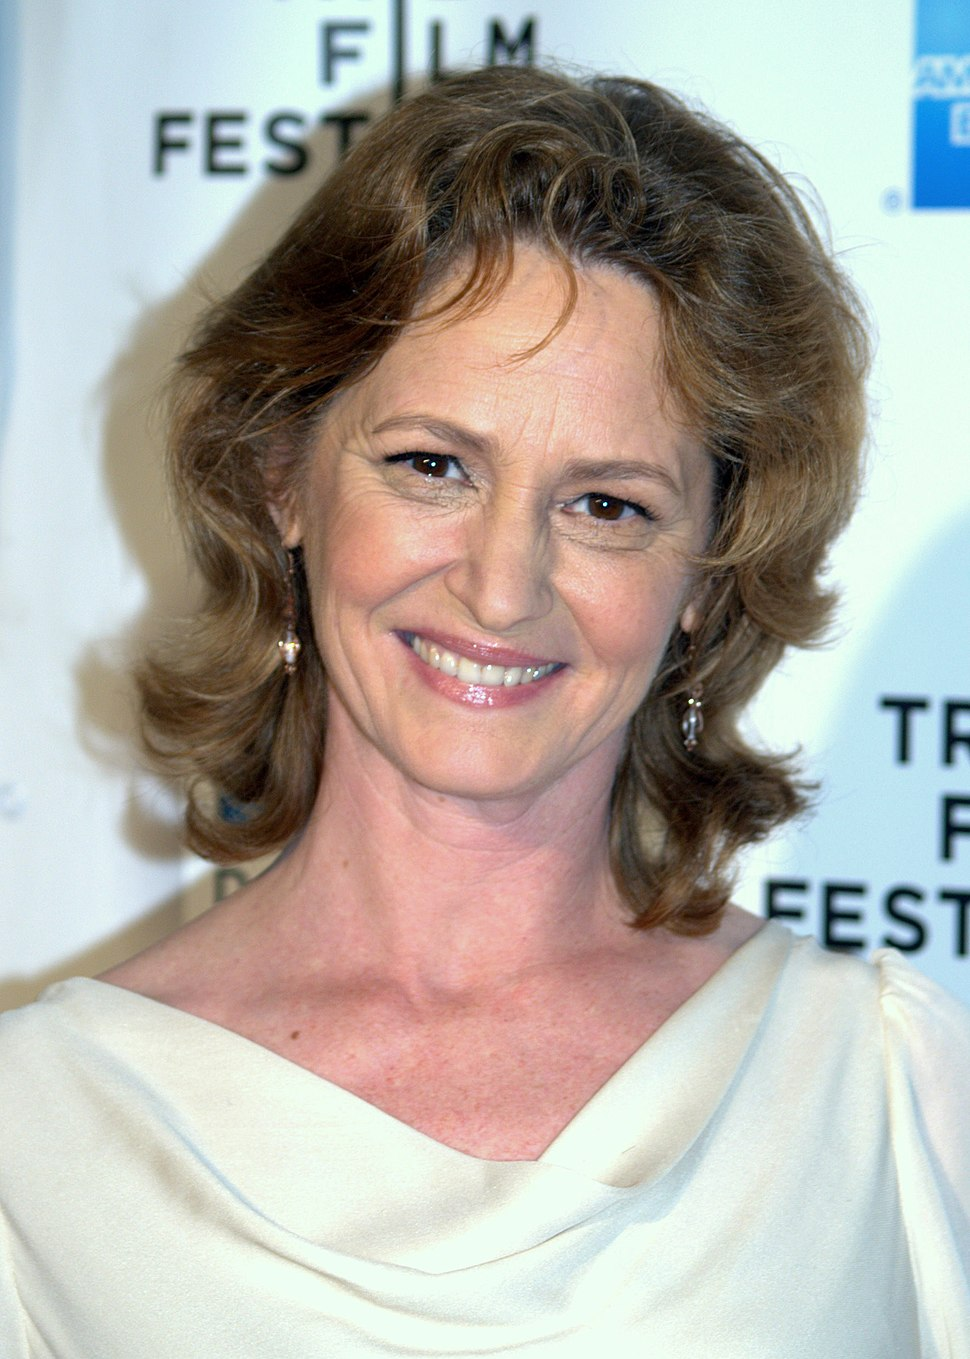 Melissa Leo at the 2009 Tribeca Film Festival